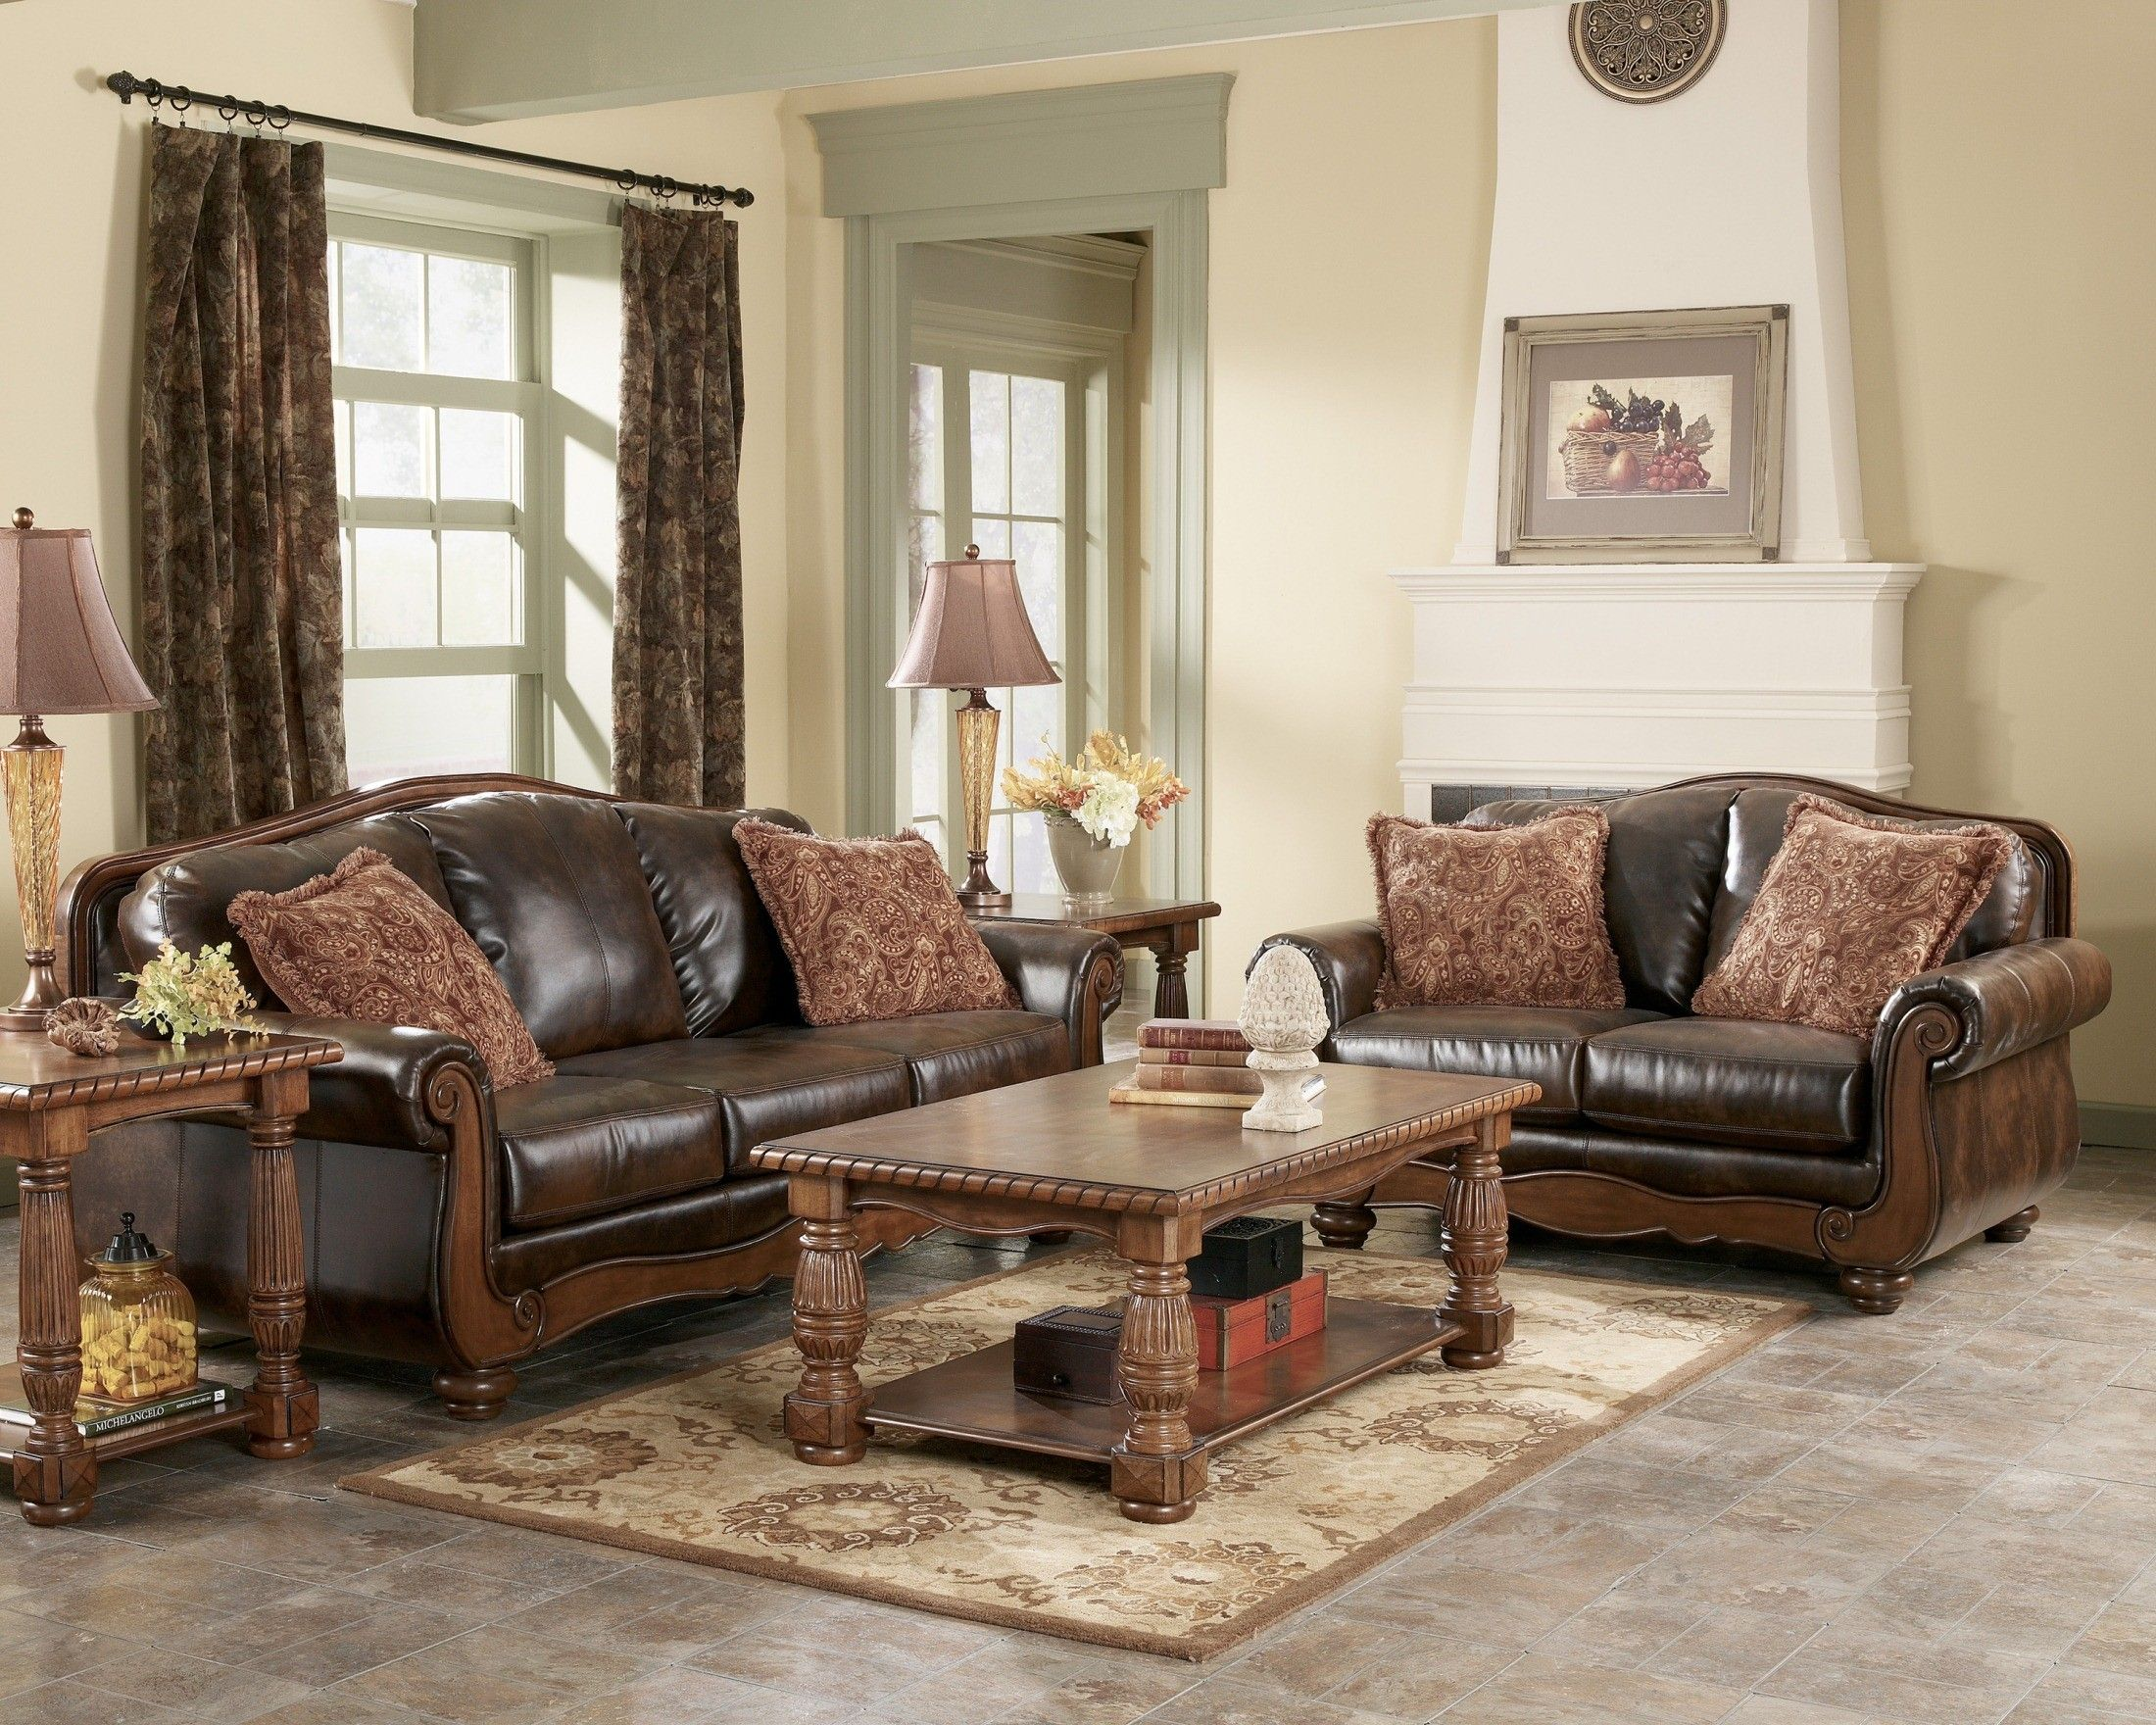 Merveilleux Nice Luxury Modern Used Furniture Lynnwood 93 For Your Hme Designing  Inspiration With Modern Used Furniture